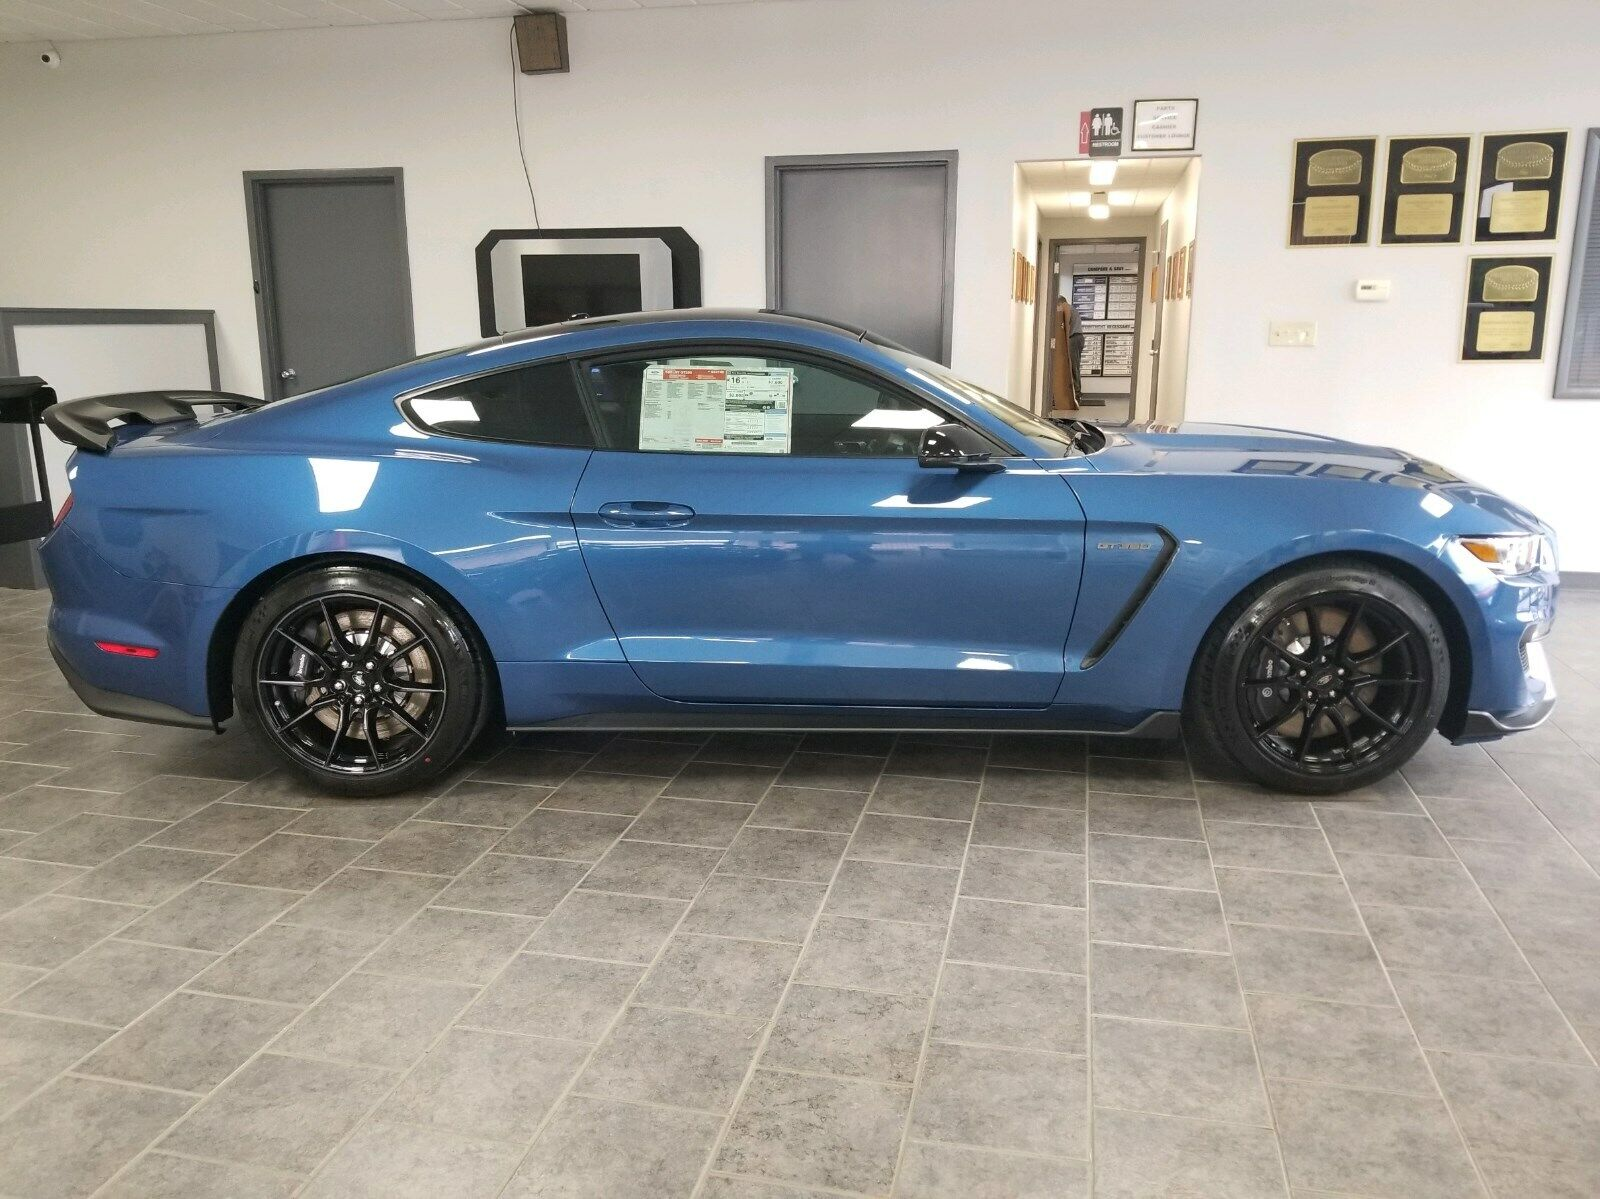 LOOK ----> BRAND NEW - 2019 Ford Shelby GT350 -RARE COLOR - $4000 UNDER MSRP!!!